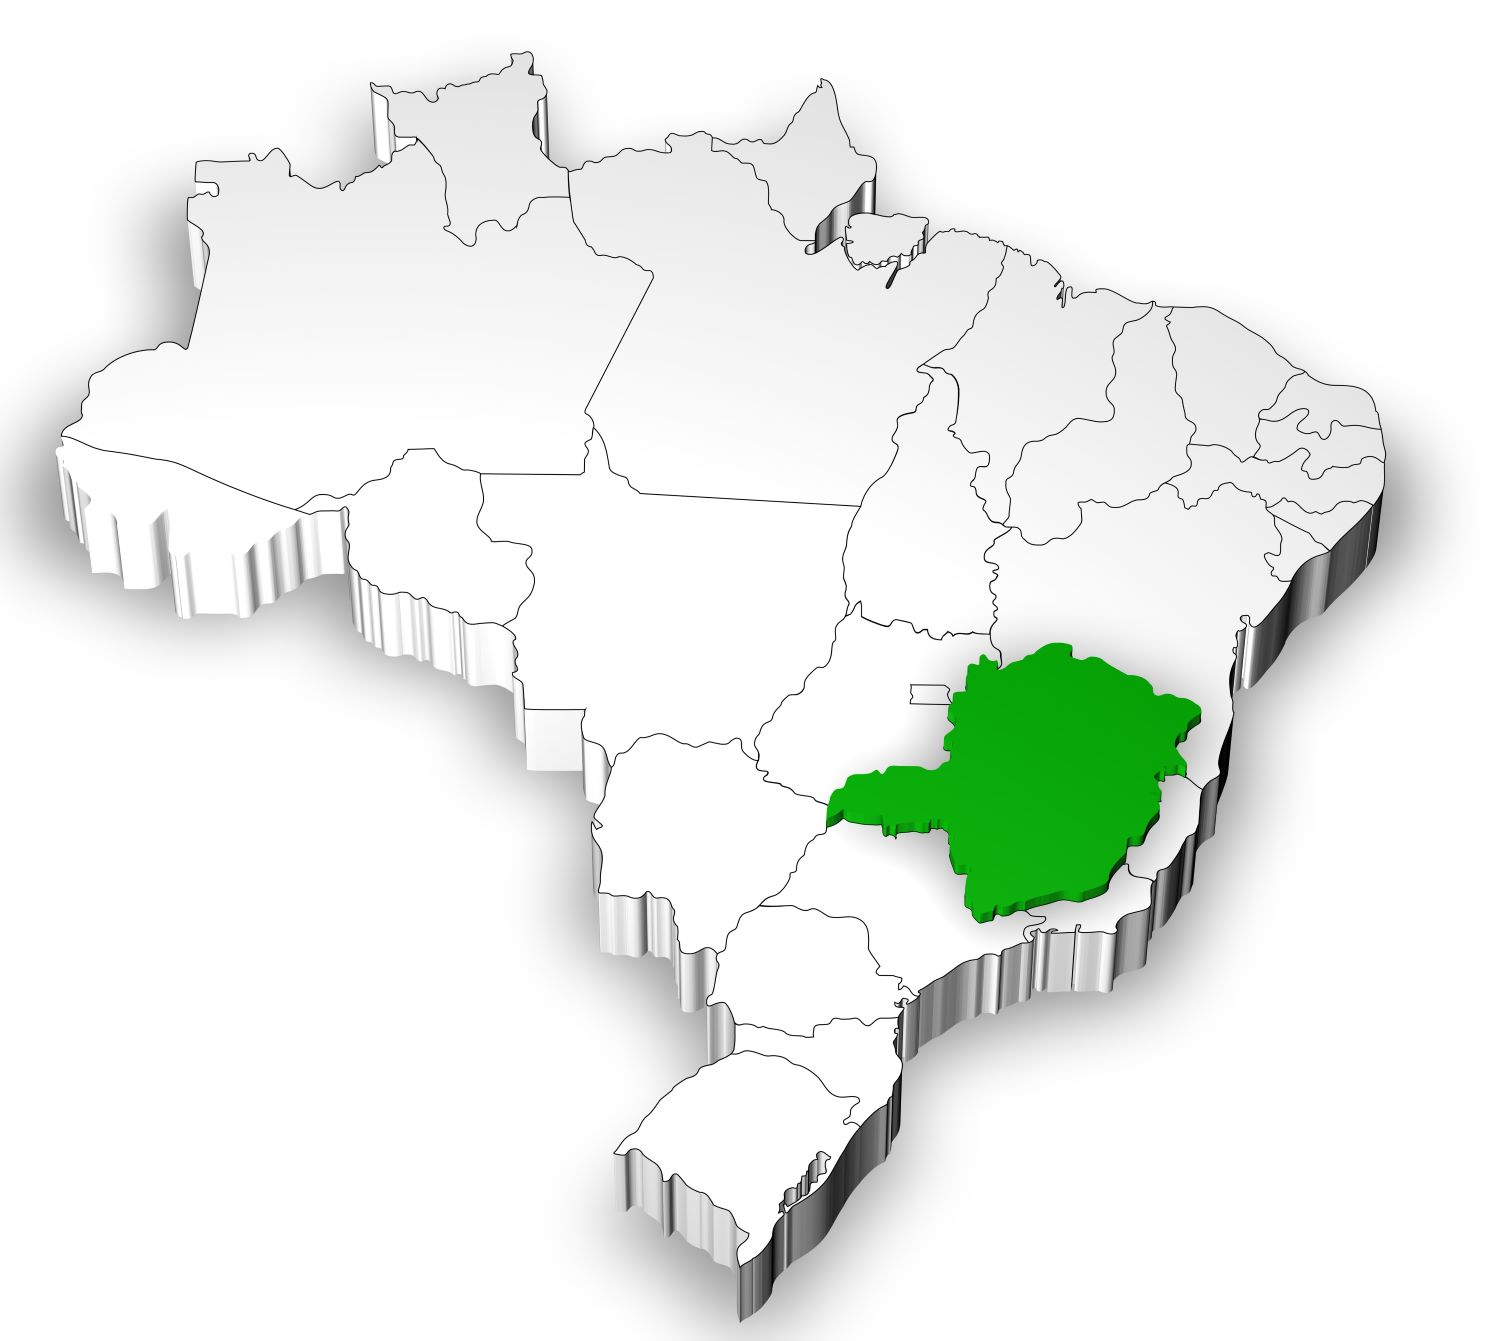 Map of Brazil with the state of Minas Gerais highlighted in green